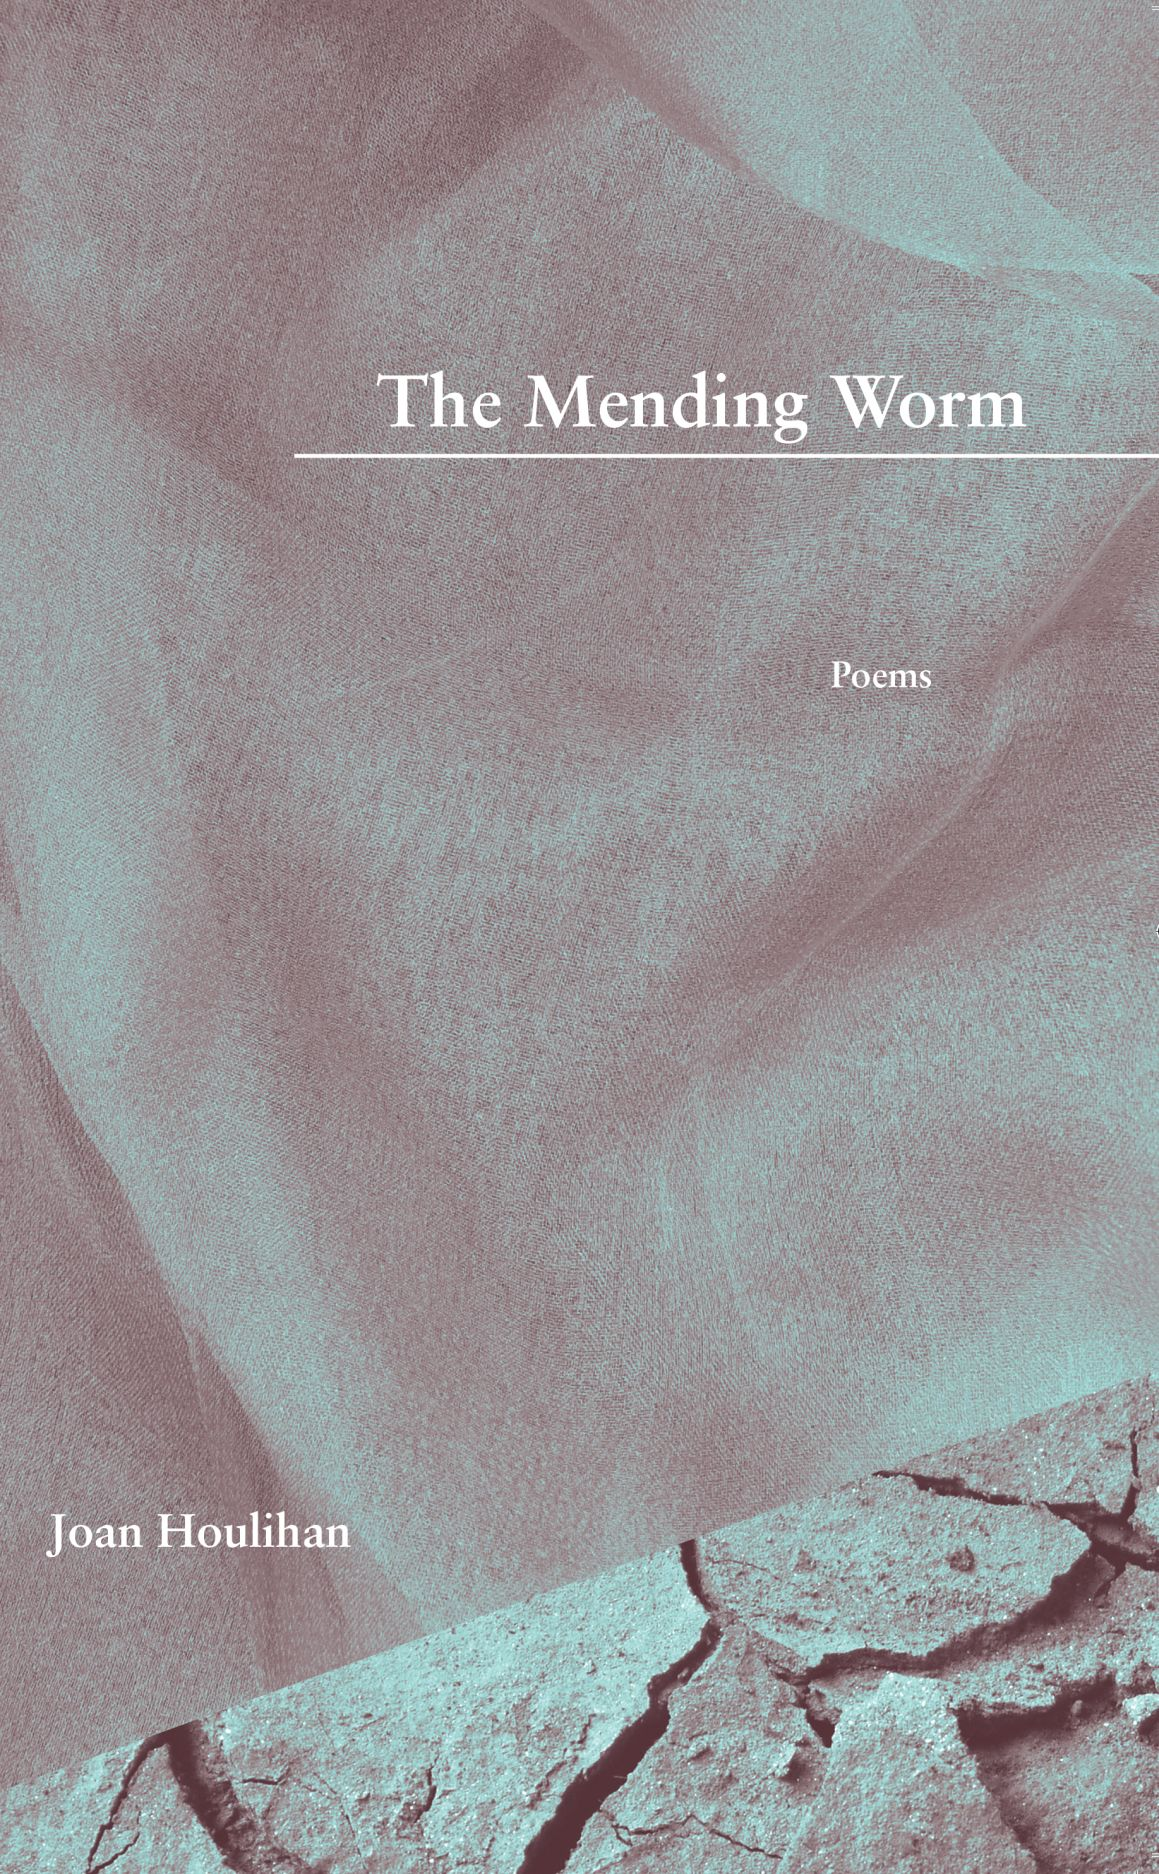 The Mending Worm